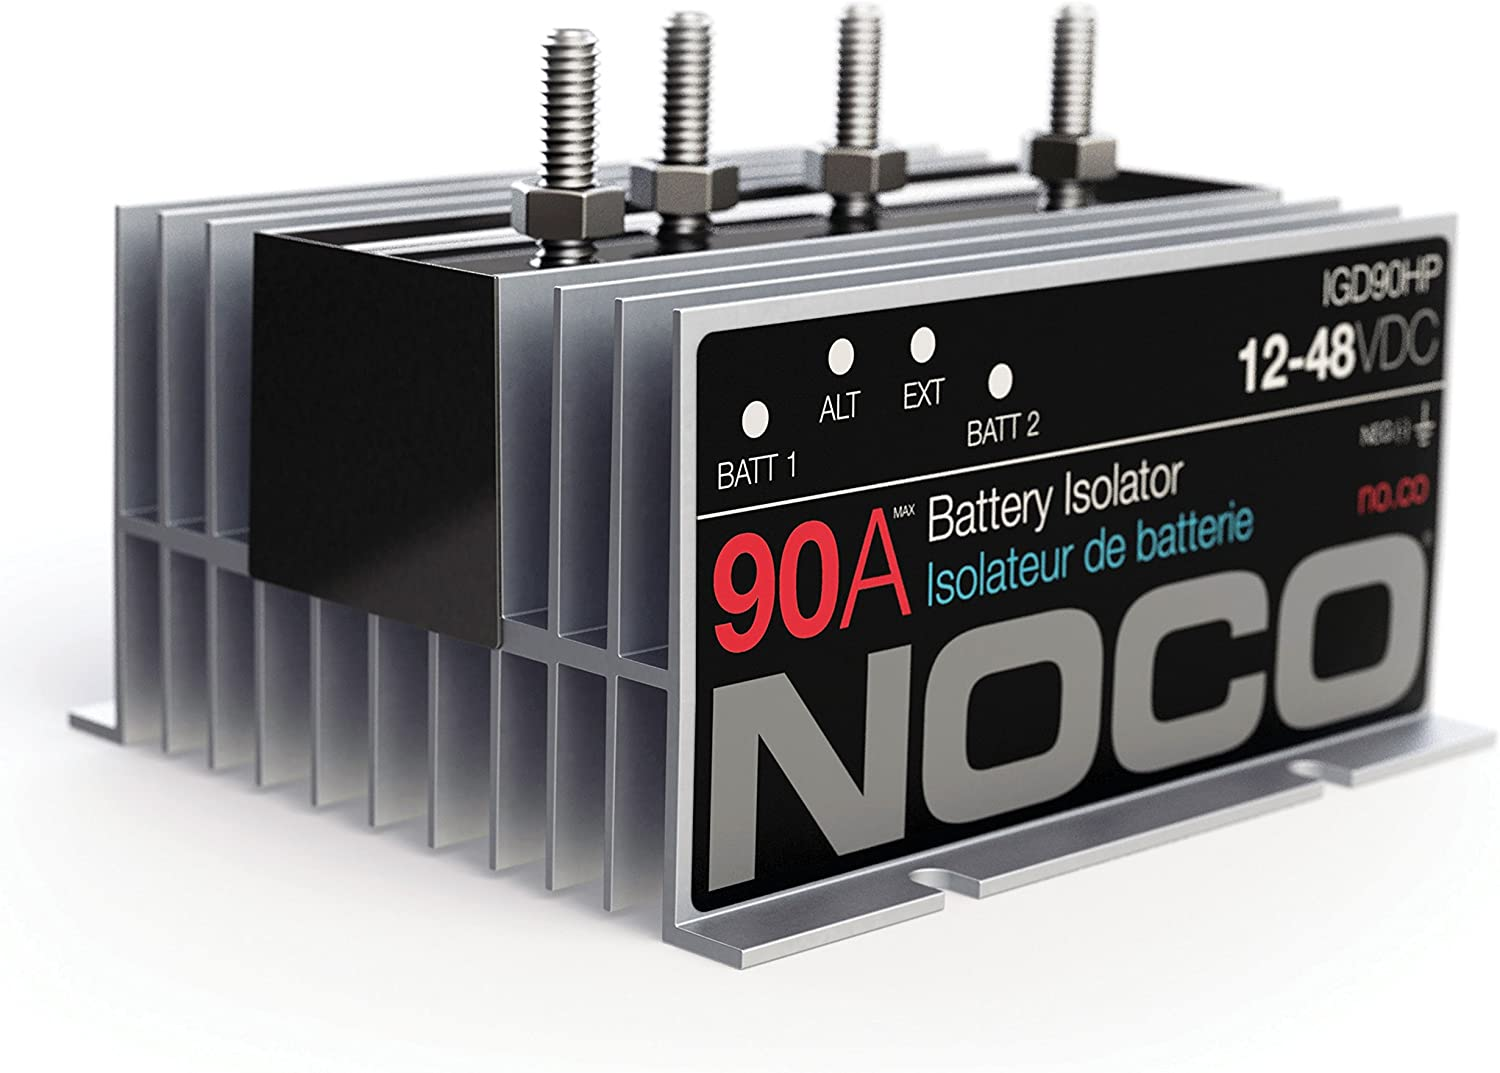 Noco Battery Isolator Wiring Diagram